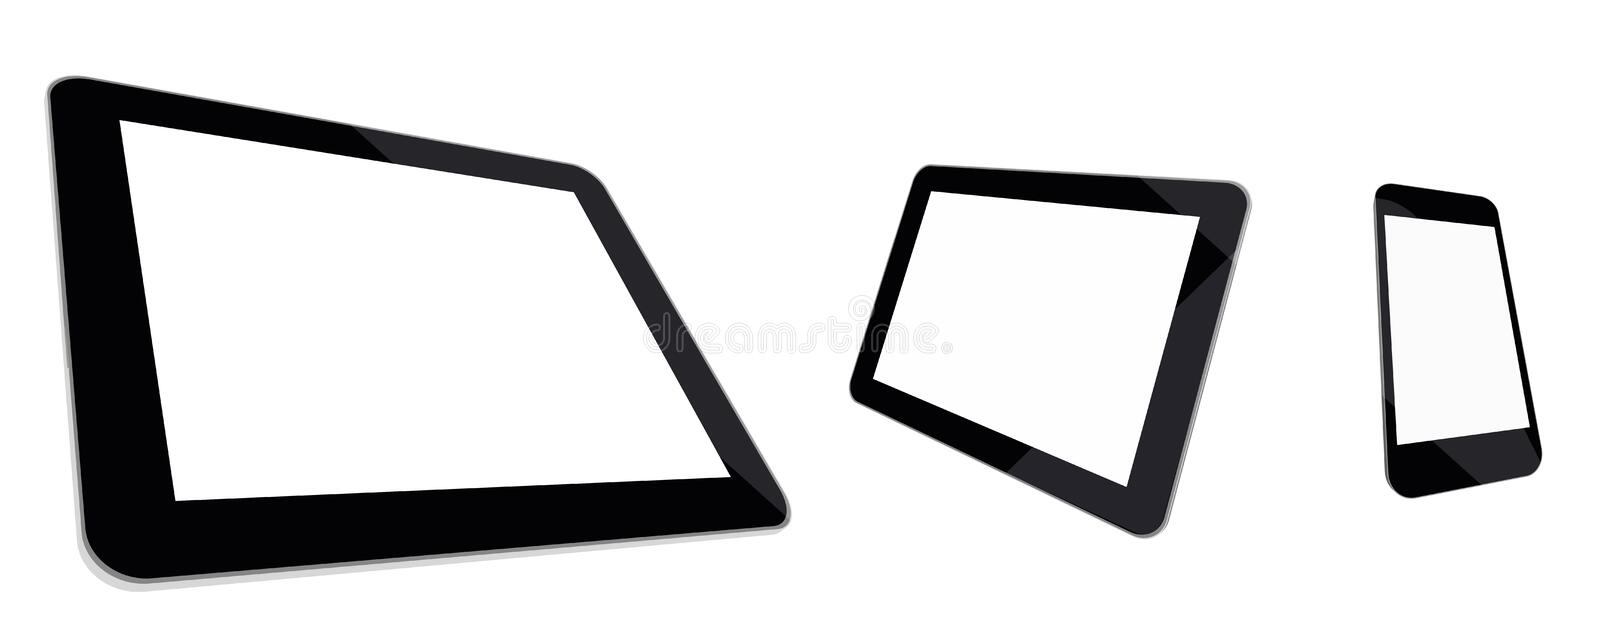 Download Tablet Computer, Mini Tablet And Smartphone Blank Stock Vector - Image: 40312278